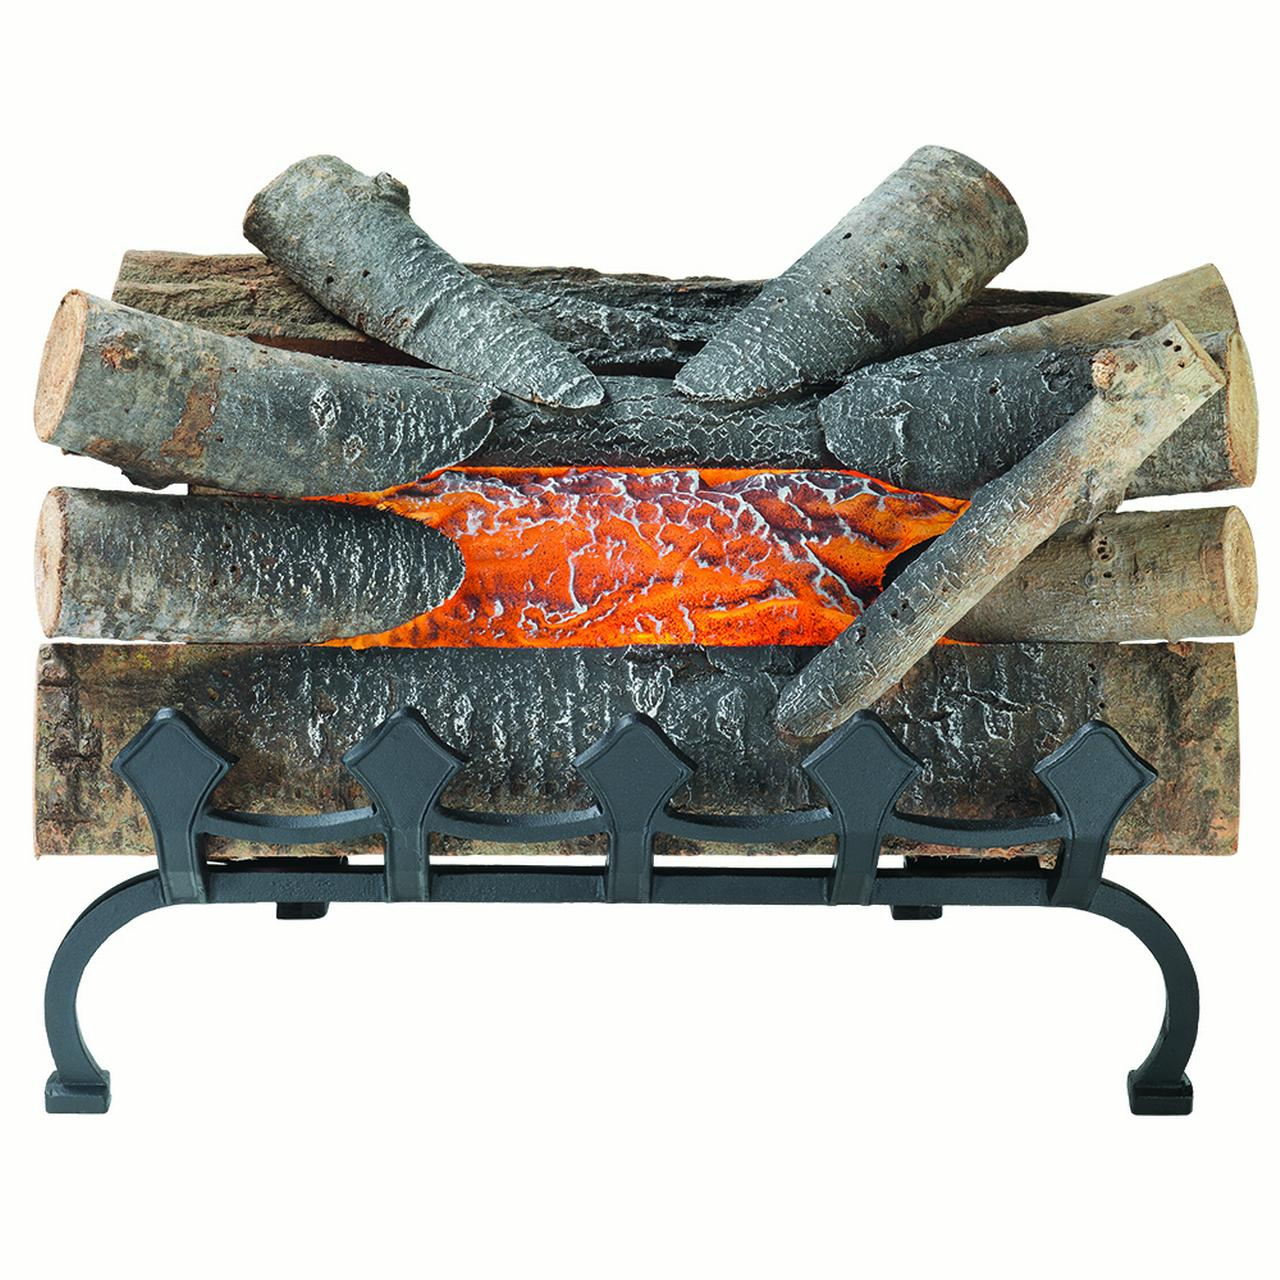 Pleasant Hearth Electric Crackling Log w/Grate